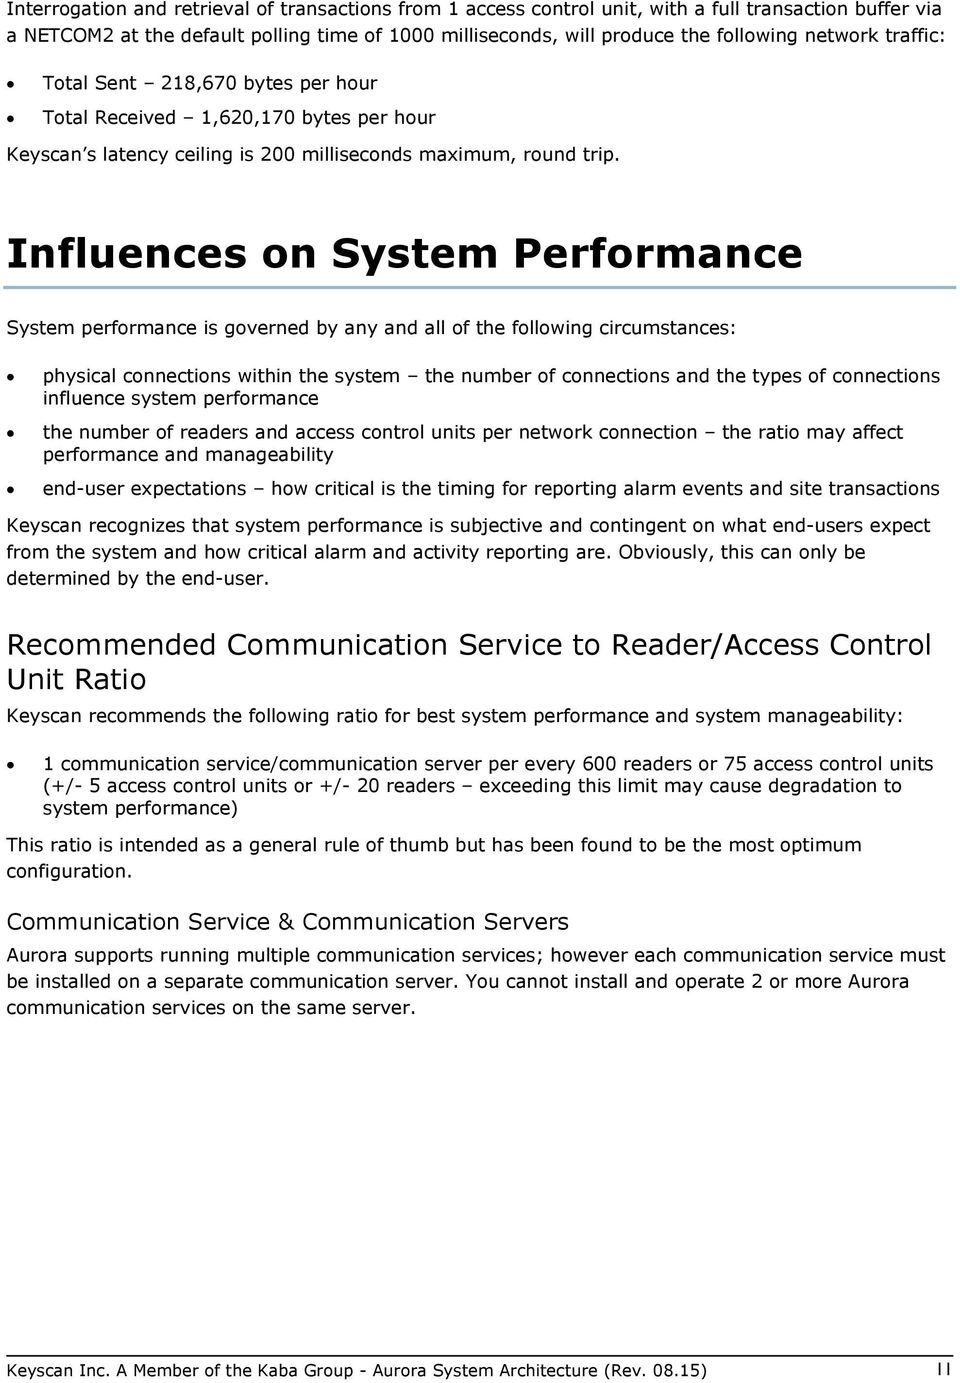 Influences on System Performance System performance is governed by any and all of the following circumstances: physical connections within the system the number of connections and the types of